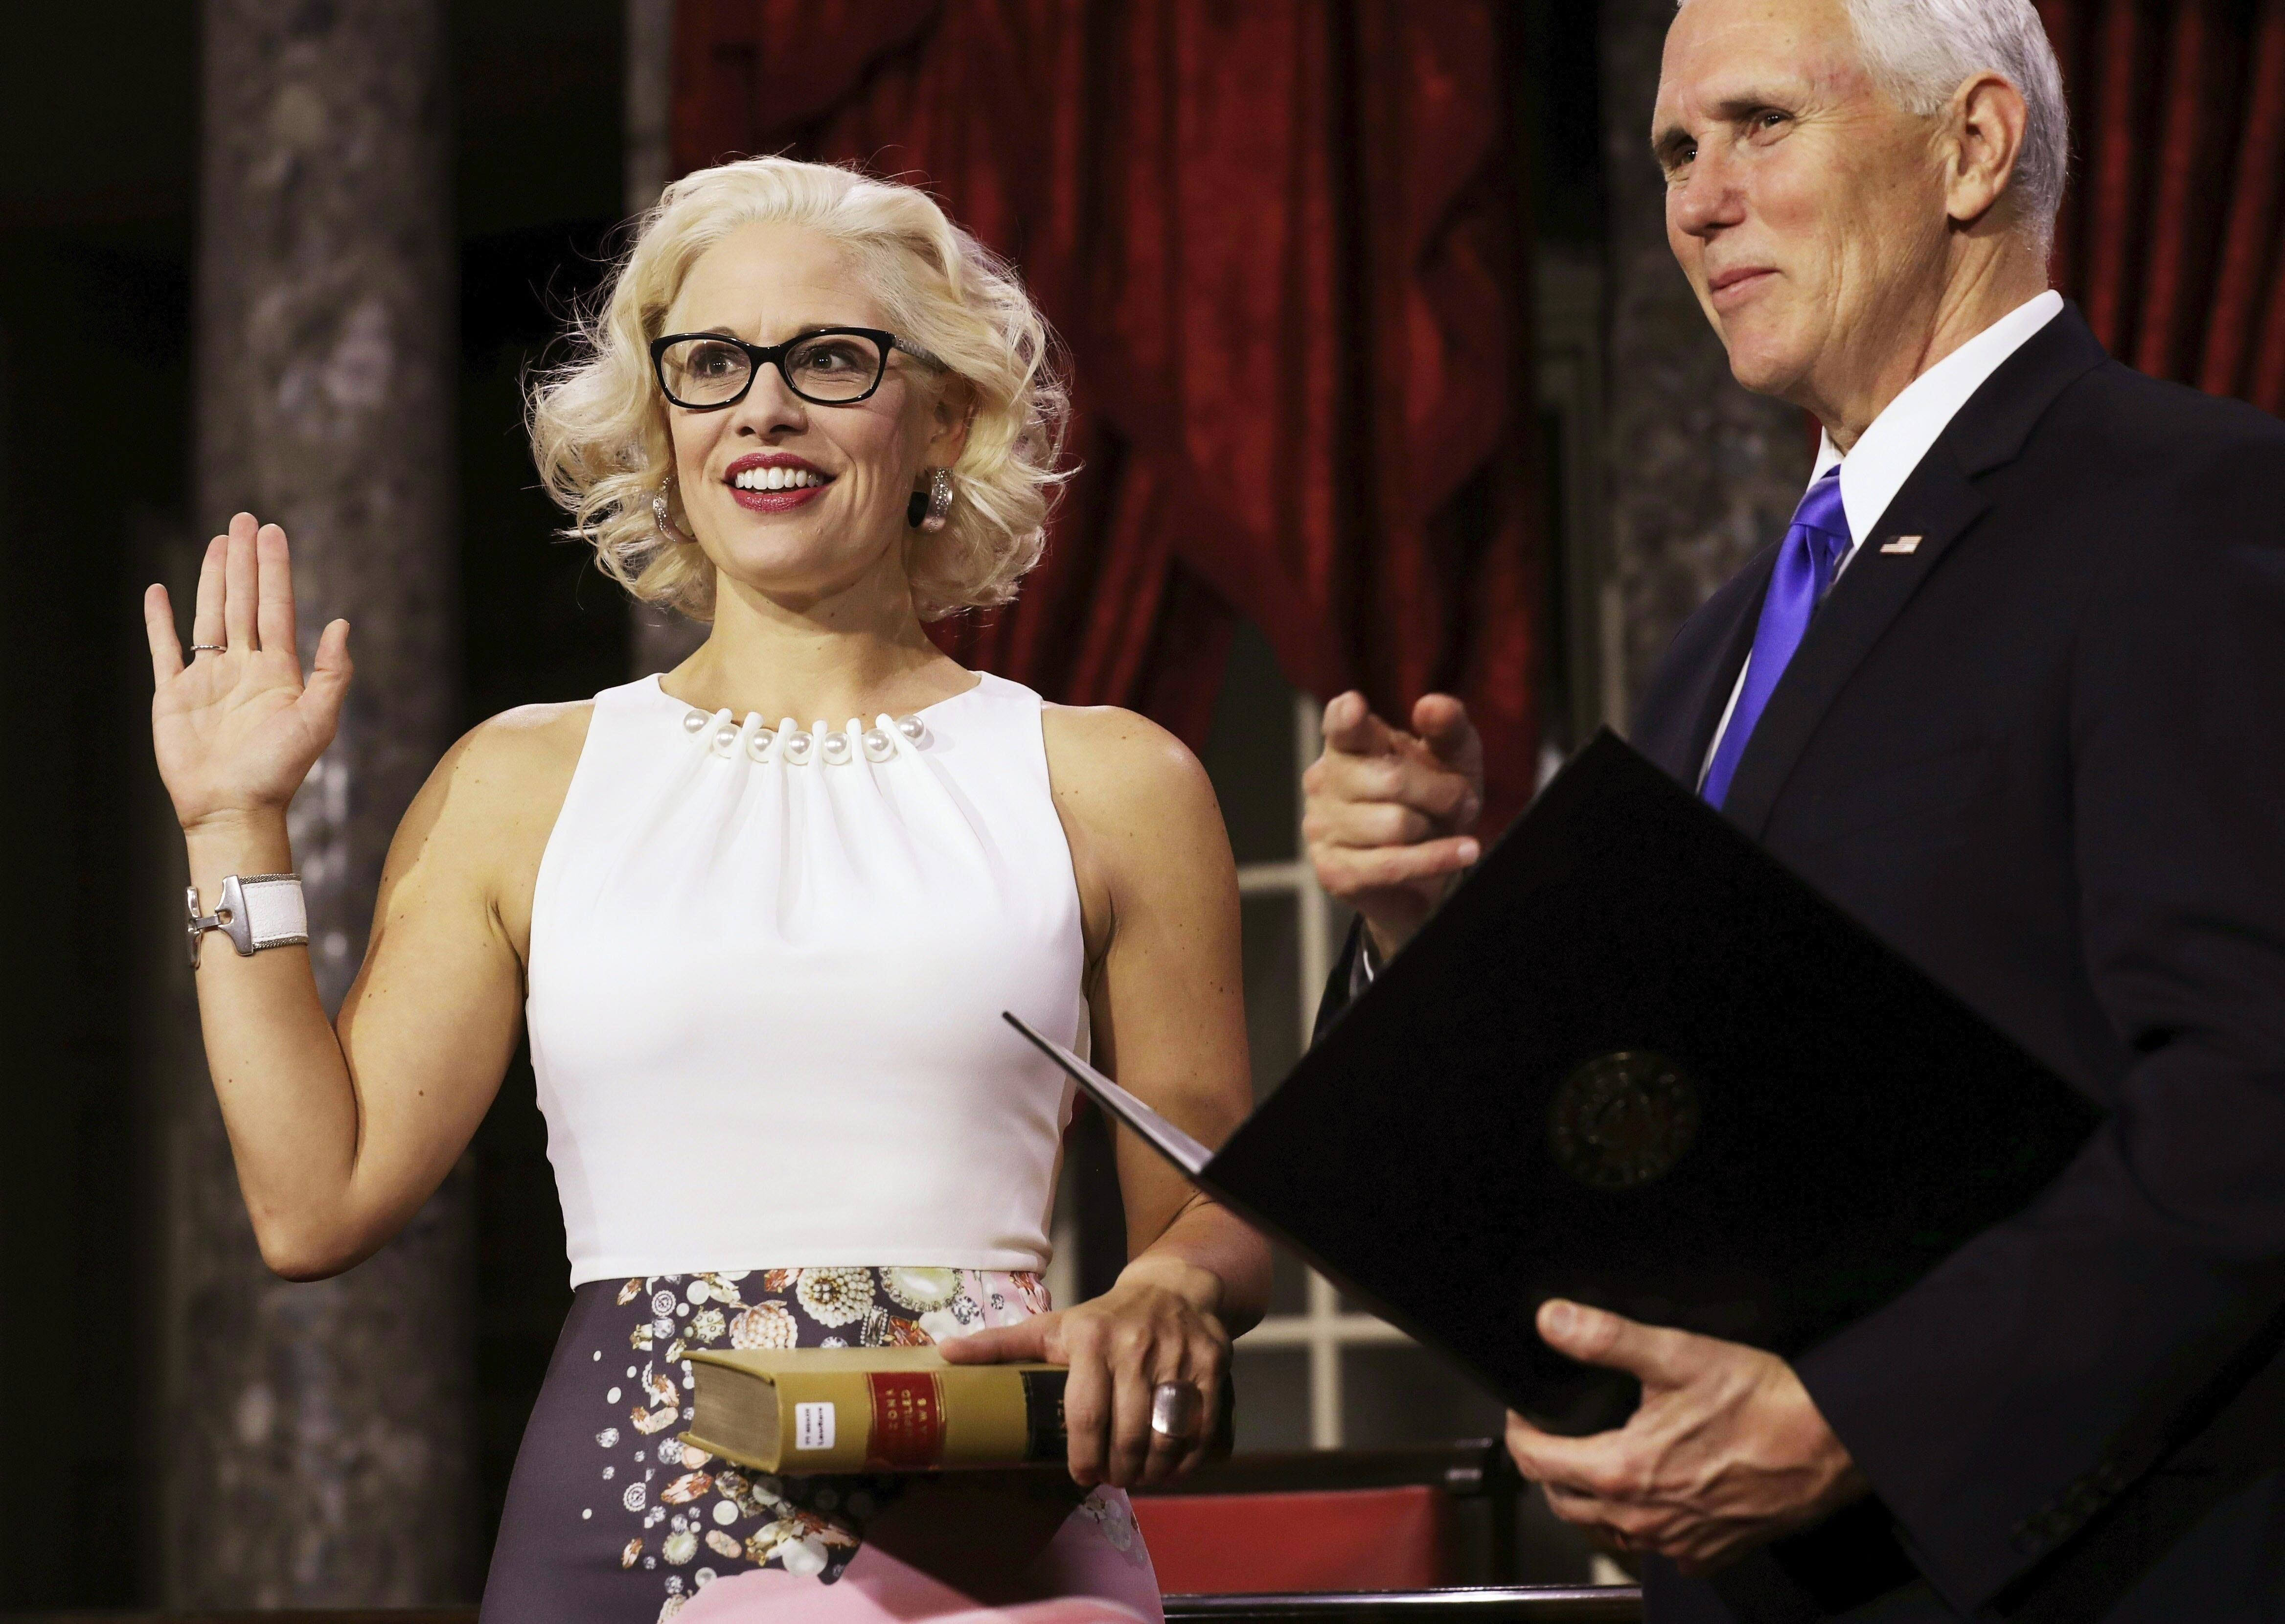 US Senator from Arizona (D) Kirsten Sinema holds a lawbook as she is sworn in by Vice President Mike Pence during the swearing-in re-enactments for recently elected senators in the Old Senate Chamber on Capitol Hill in Washington, DC January 3, 2019. (Photo by Alex EDELMAN / AFP)        (Photo credit should read ALEX EDELMAN/AFP/Getty Images)